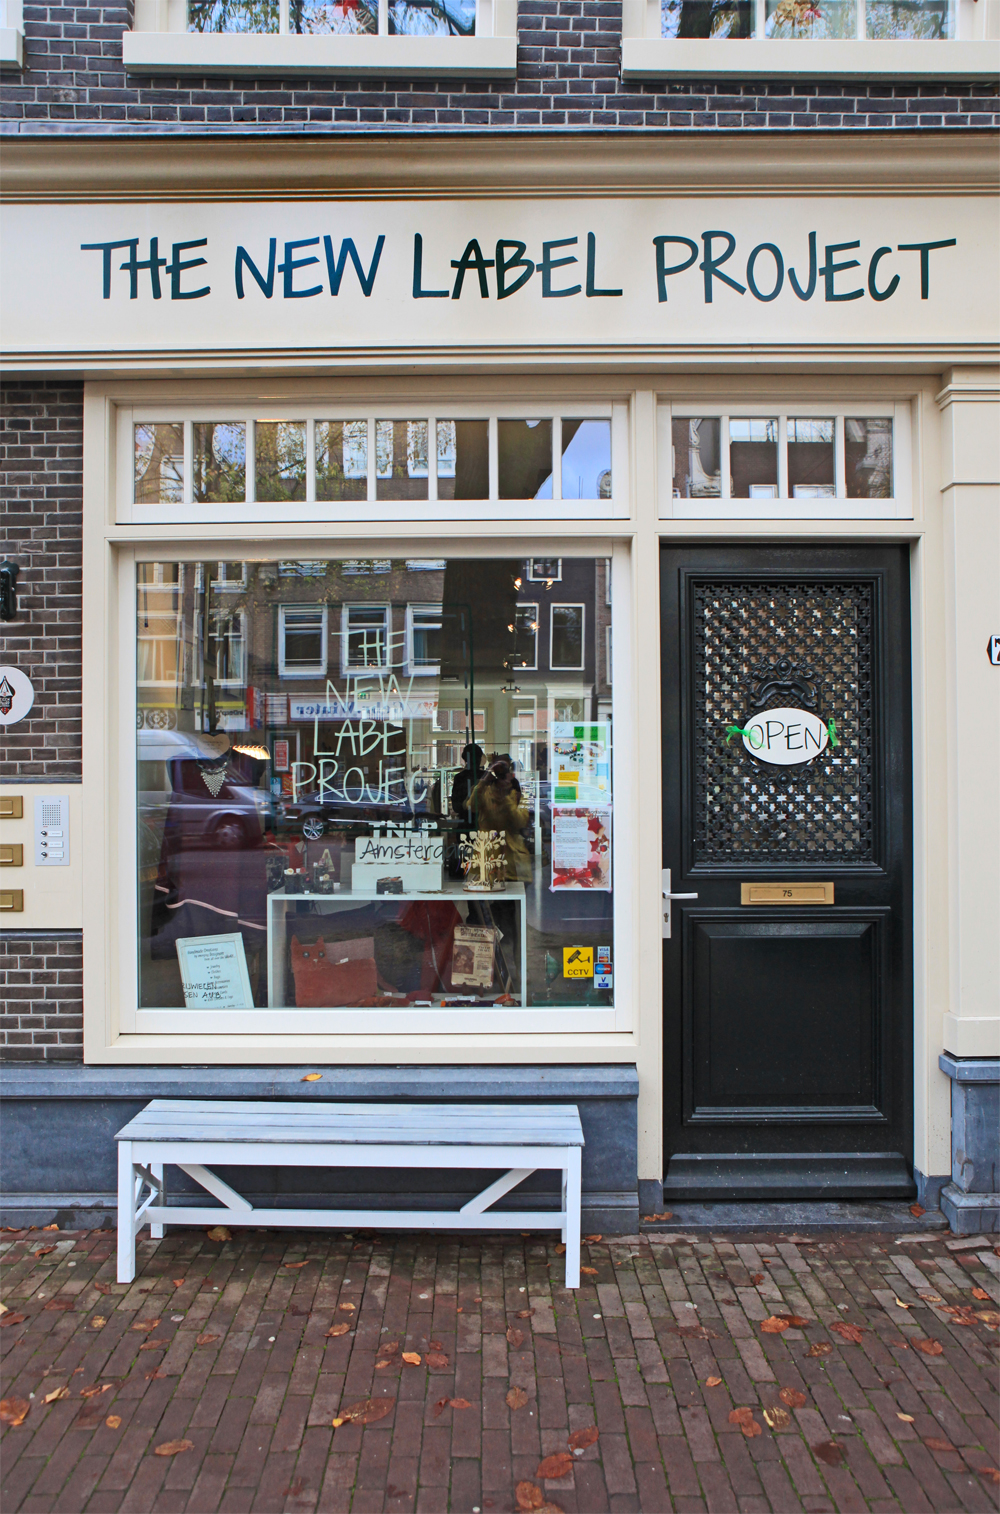 The New Label Project store at 75 Rozengracht, Amsterdam.